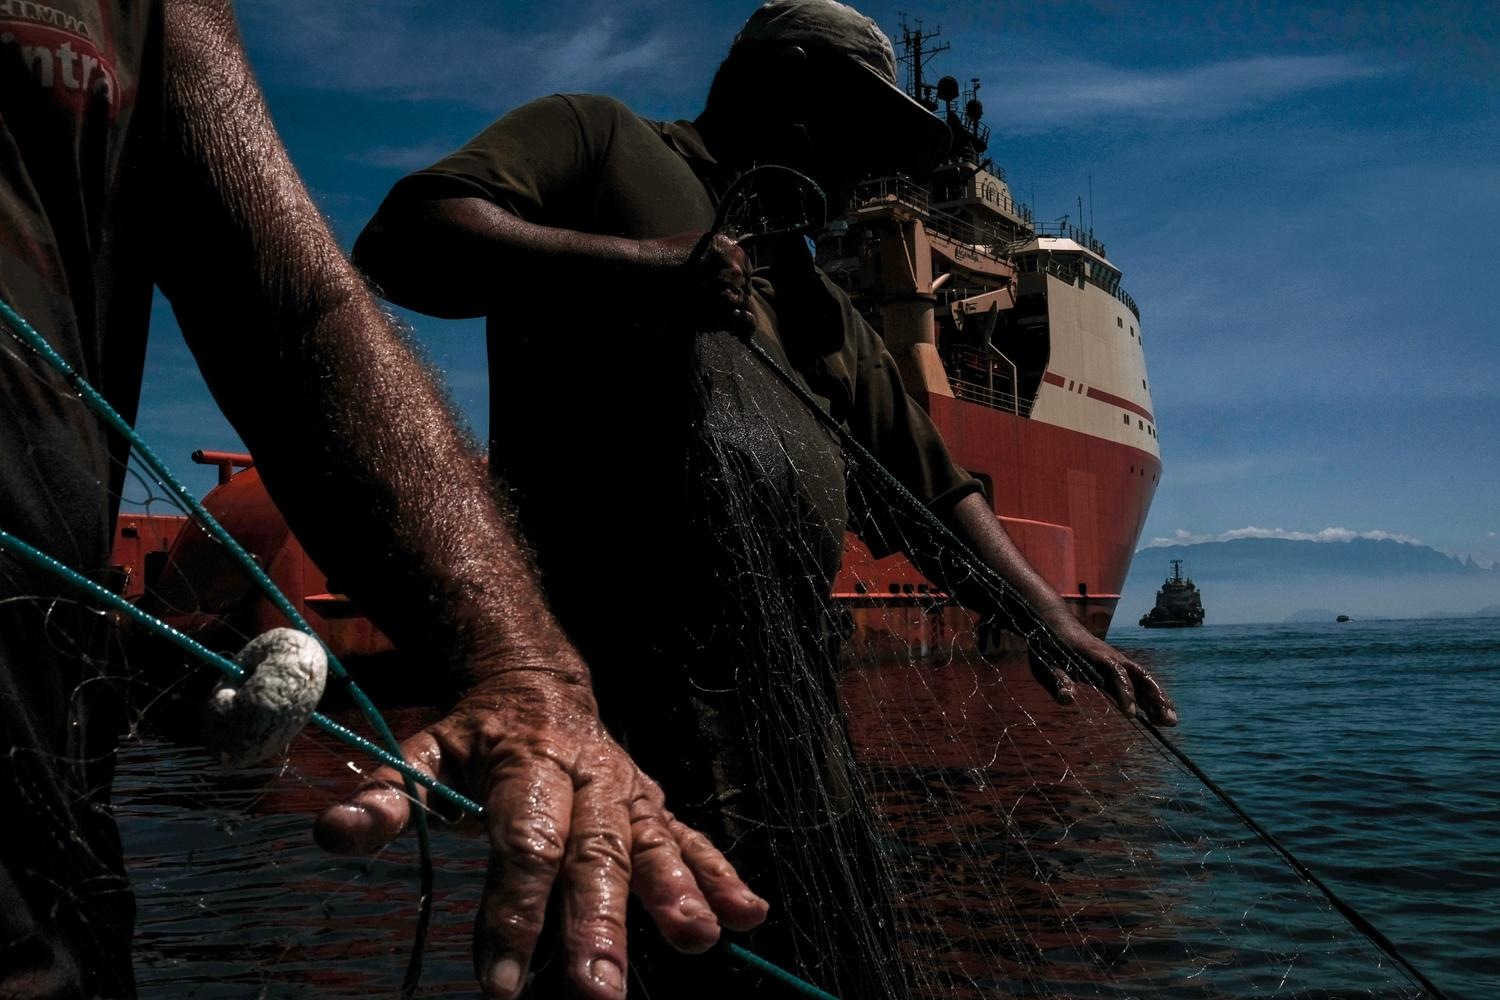 The oil vessels are dotted all over the bay. The fish tend to hide under them, but even then they're lucky to get a good catch. Artesanal fishermen use time-tested methods but it's still back-breaking work hauling empty nets.